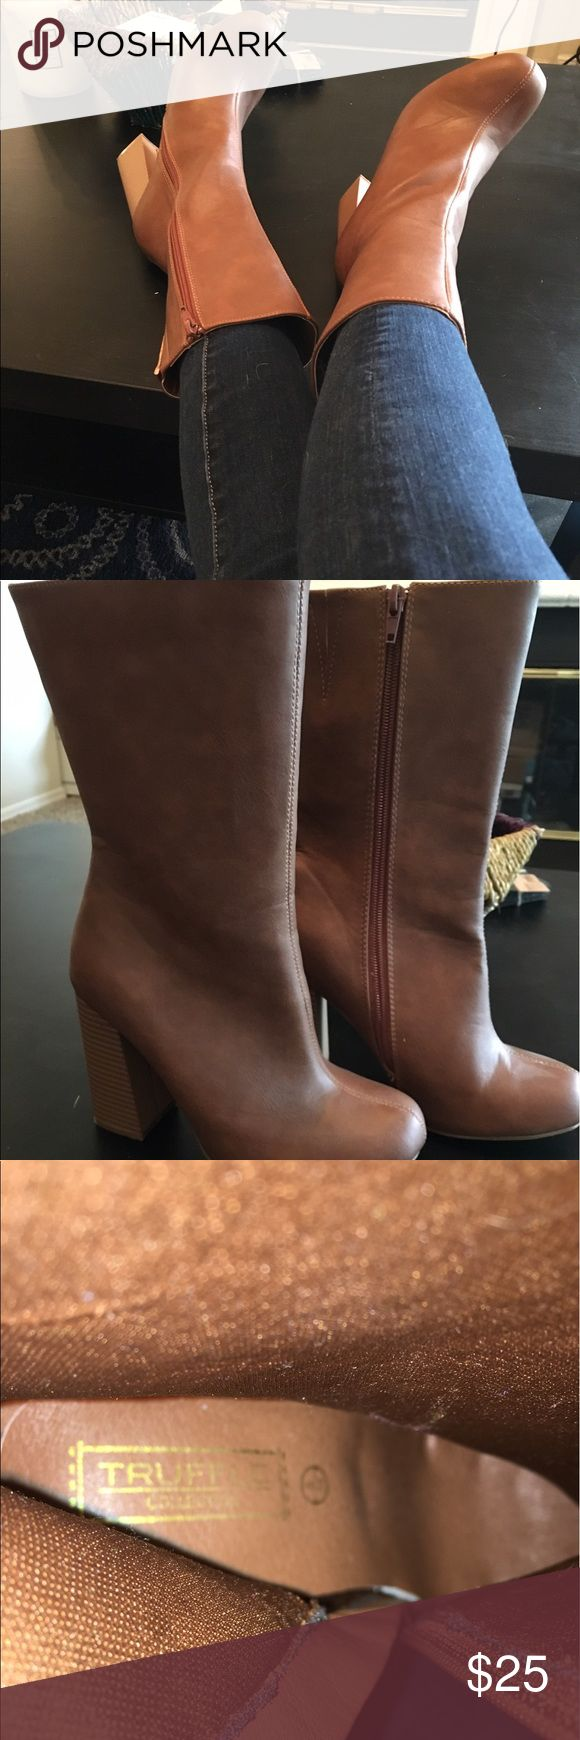 ASOS 70s Style Mahogany Boots Gorgeous mahogany brown mid-calf block heel boots from the ASOS Truffle Collection. Worn only once, and in excellent condition, these boots are an absolute steal. A throwback look that will make you feel like a seventies supermodel, a tall heel will make you feel leggy and thin. A boho, hippie, seventies look can become polished with the addition of these gorgeous heels. There's absolutely no wear on the inside, so they're like new. Off season pricing!! ASOS…